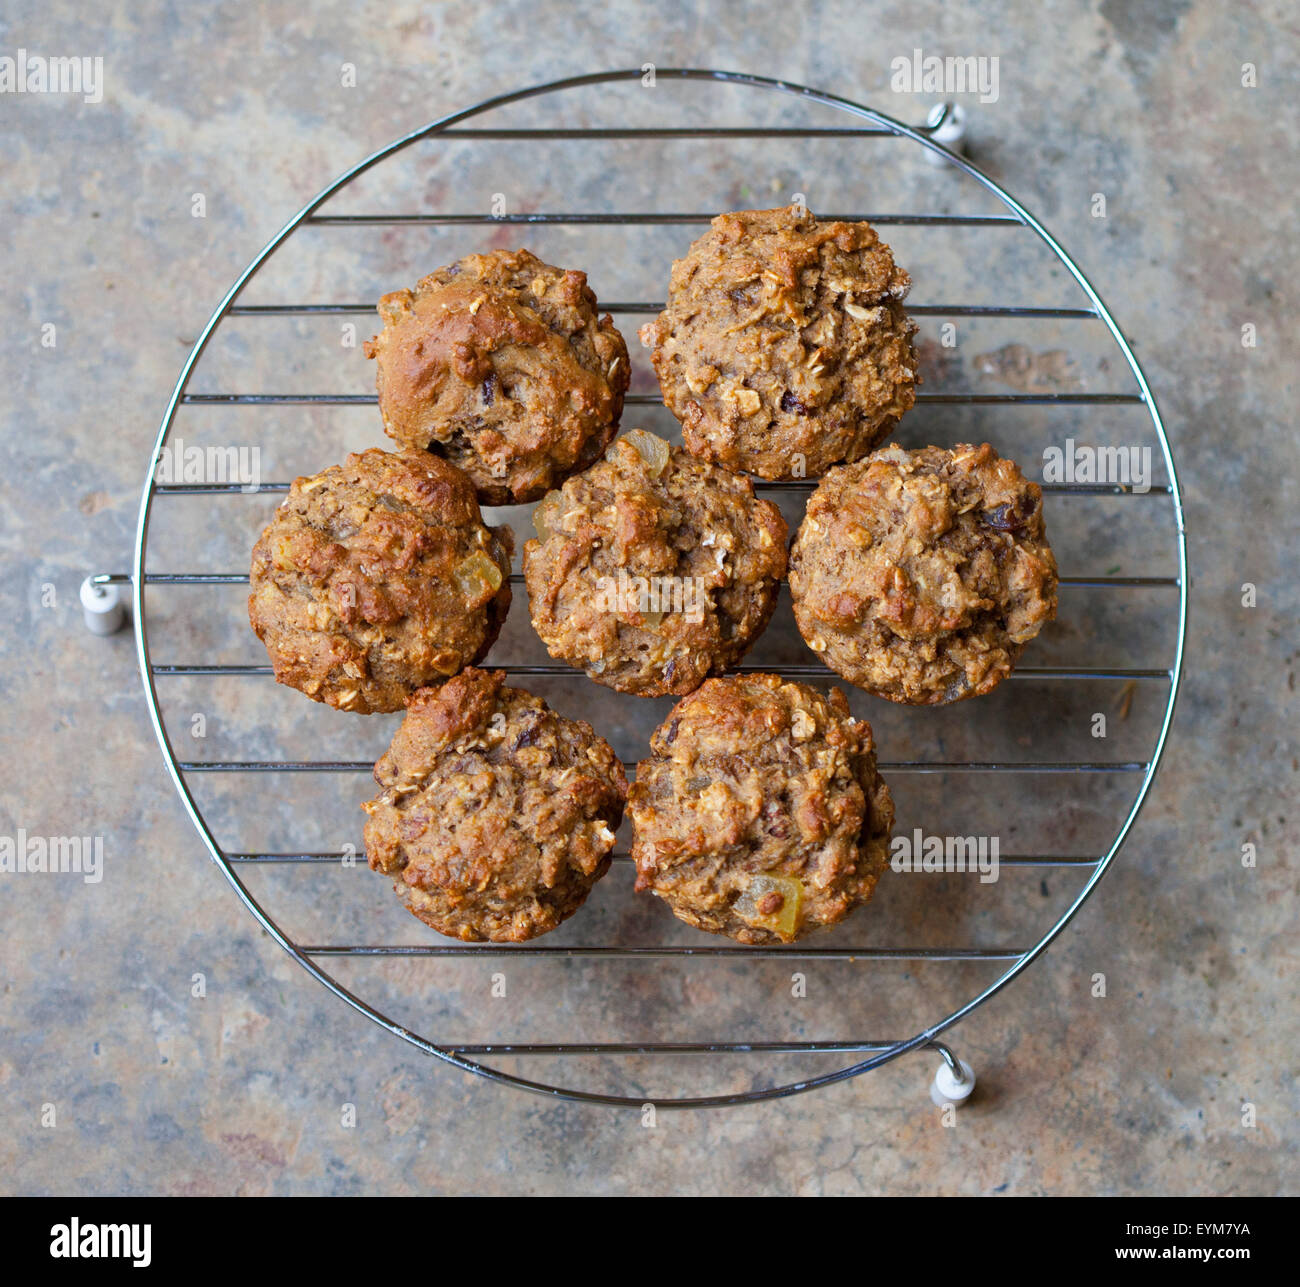 Freshly baked bran muffins cooling on a rack - Stock Image